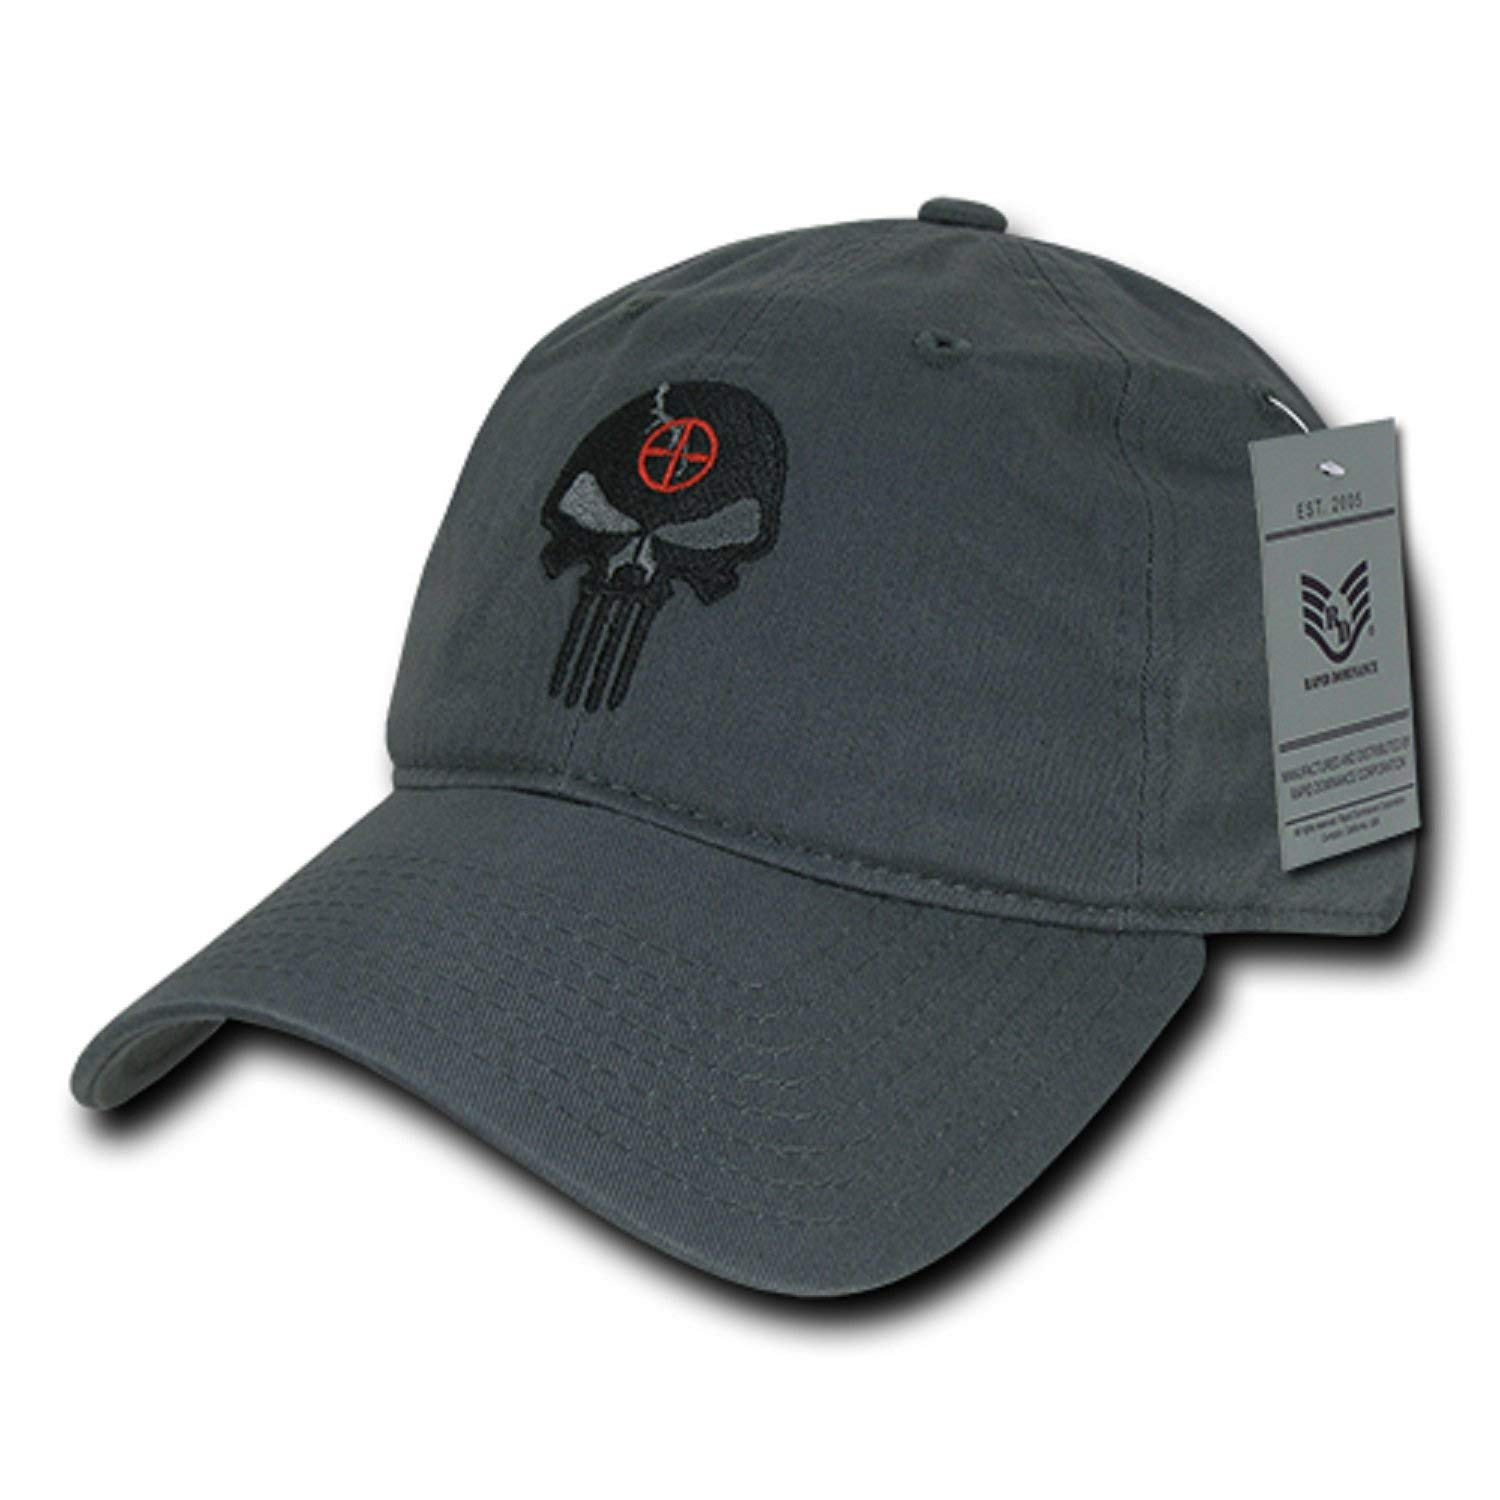 49c7c3fd Get Quotations · BHFC Charcoal Gray Punisher Skull Military Navy Seal  Special Forces Relaxed Polo Baseball Hat Cap